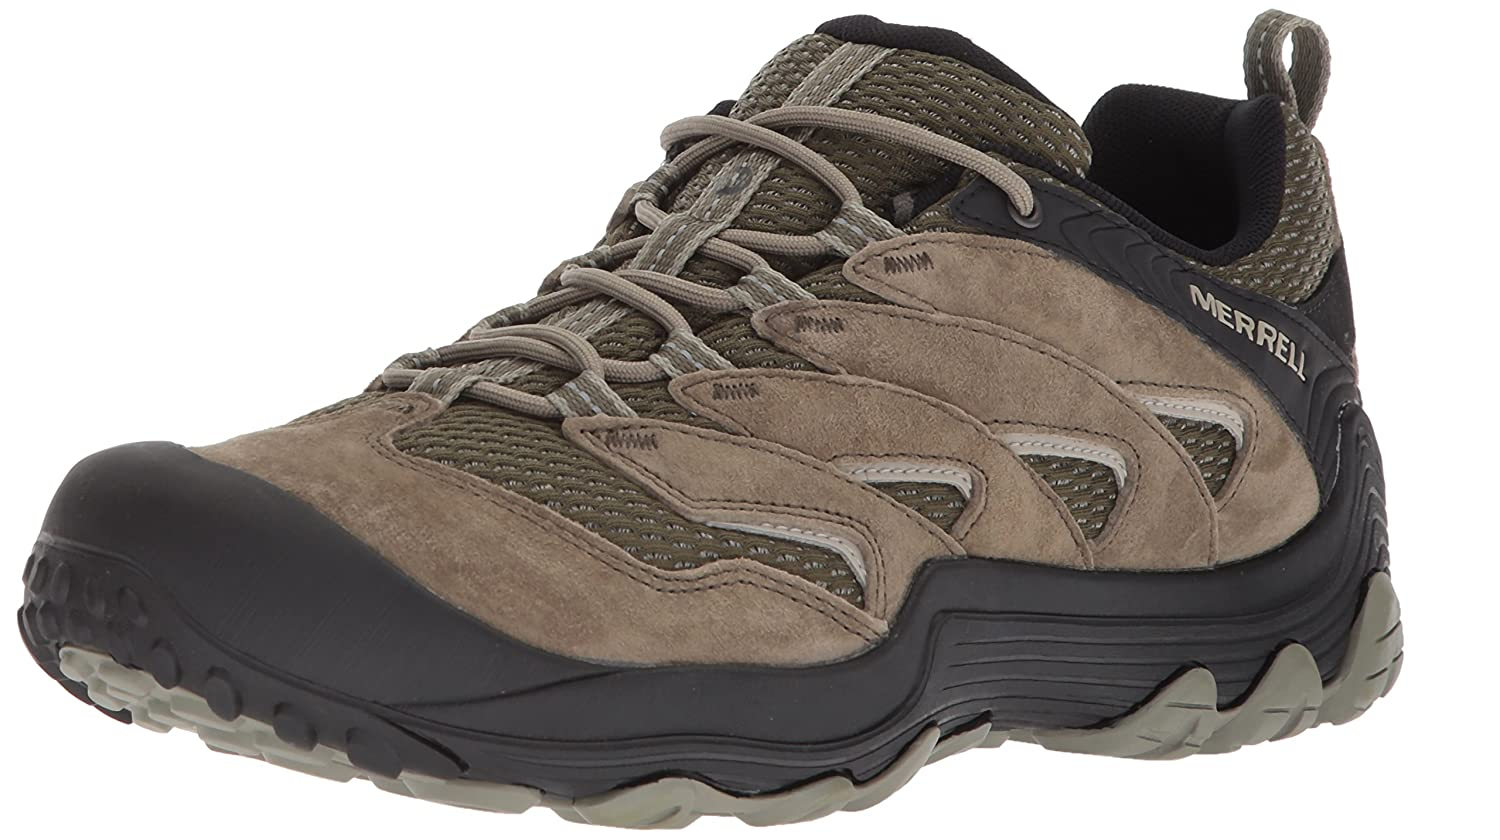 Merrell Women's Chameleon 7 Limit Hiking Boot B071LM9MMV 11 D(M) US|Dusty Olive Men's